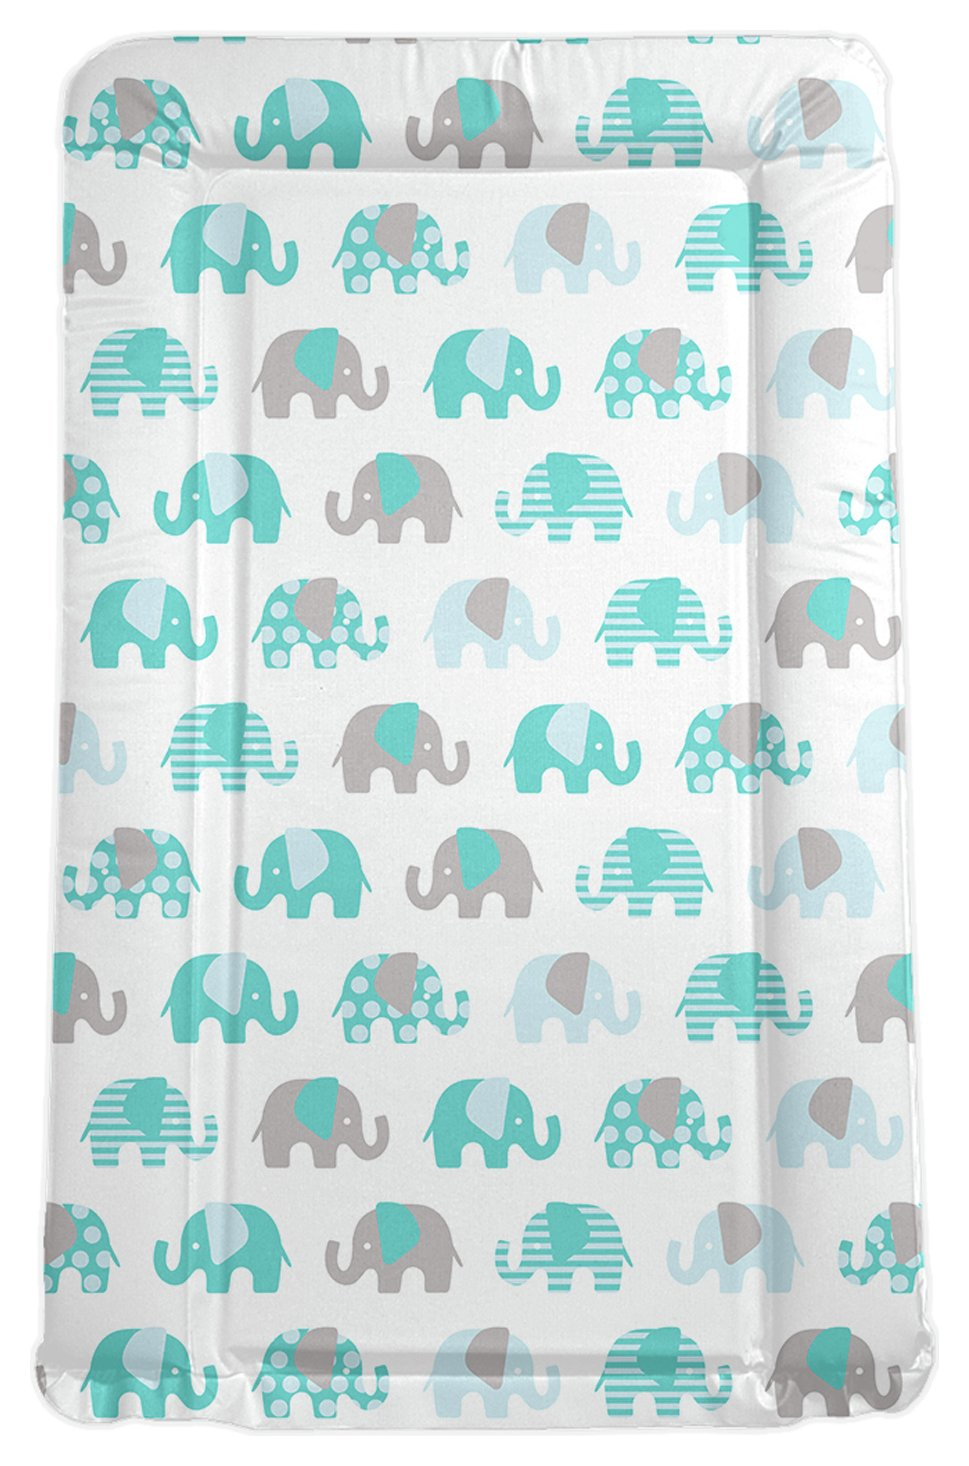 Image of My Babiie - Billie Faiers Turquoise Elephant - Changing Mat